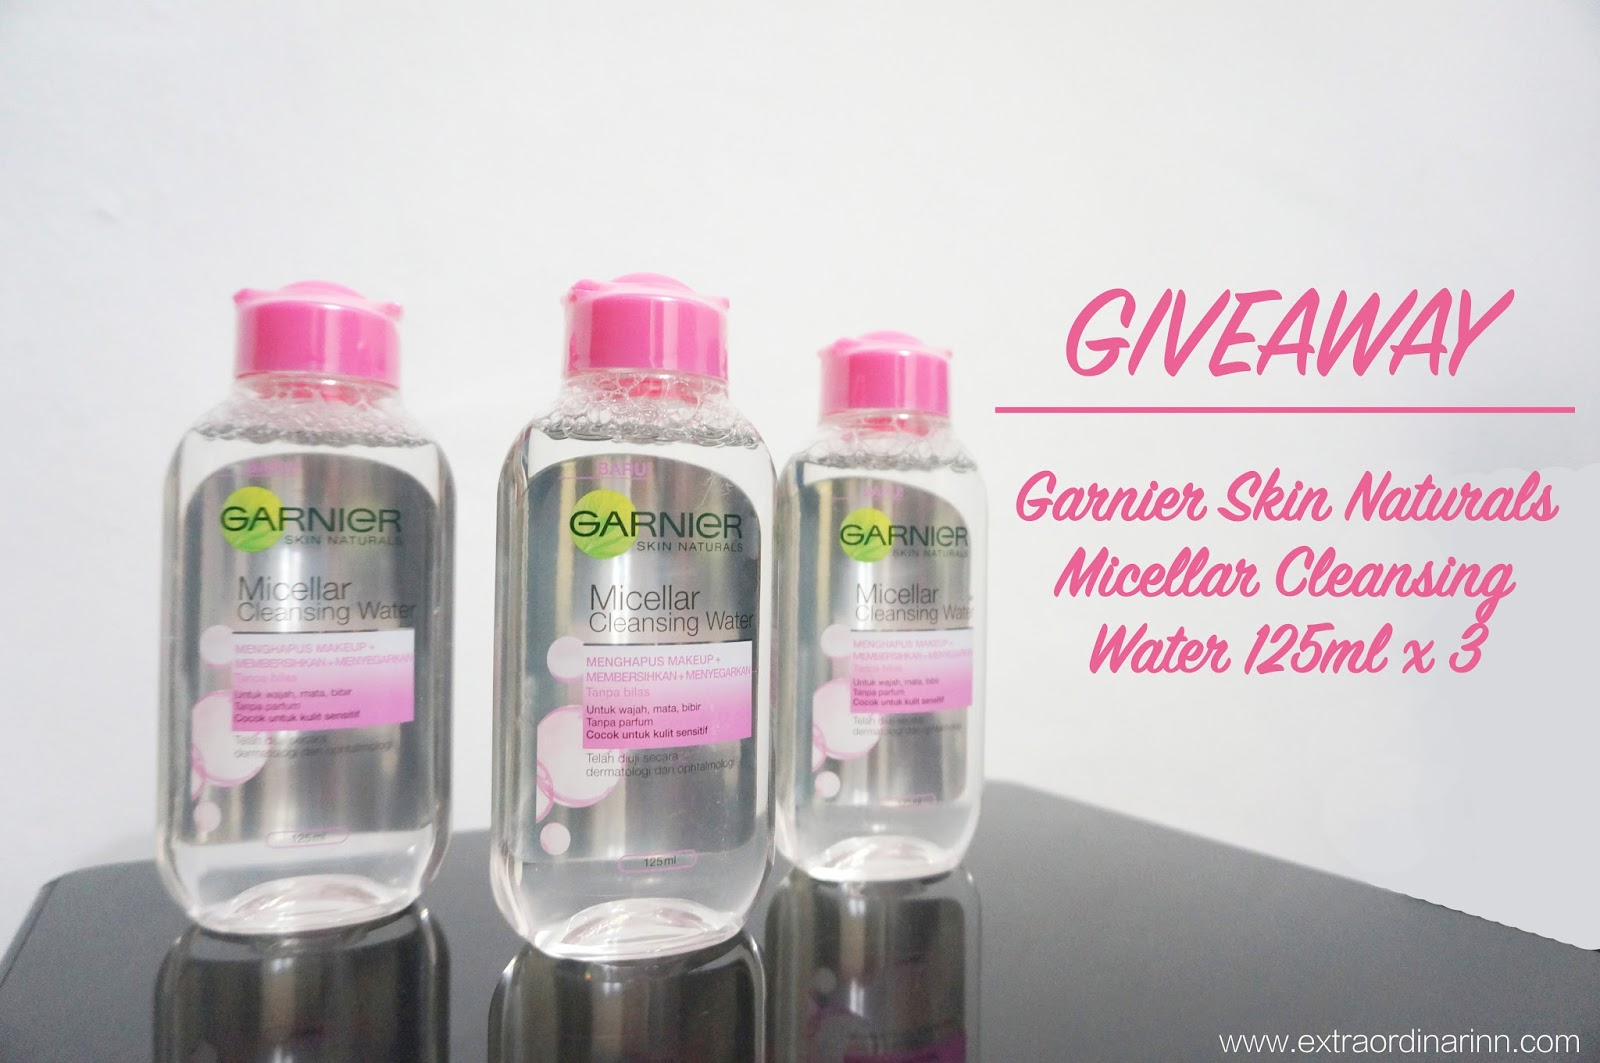 Carinn Carerynn Malaysia Fashion Beauty Lifestyle Blog Garnier Micellar Cleansing Water 125ml I Have Teamed Up With Hermo To Reward 3 Lucky Readers This Gentle Worth Rm1450 The Giveaway Will Be Held On